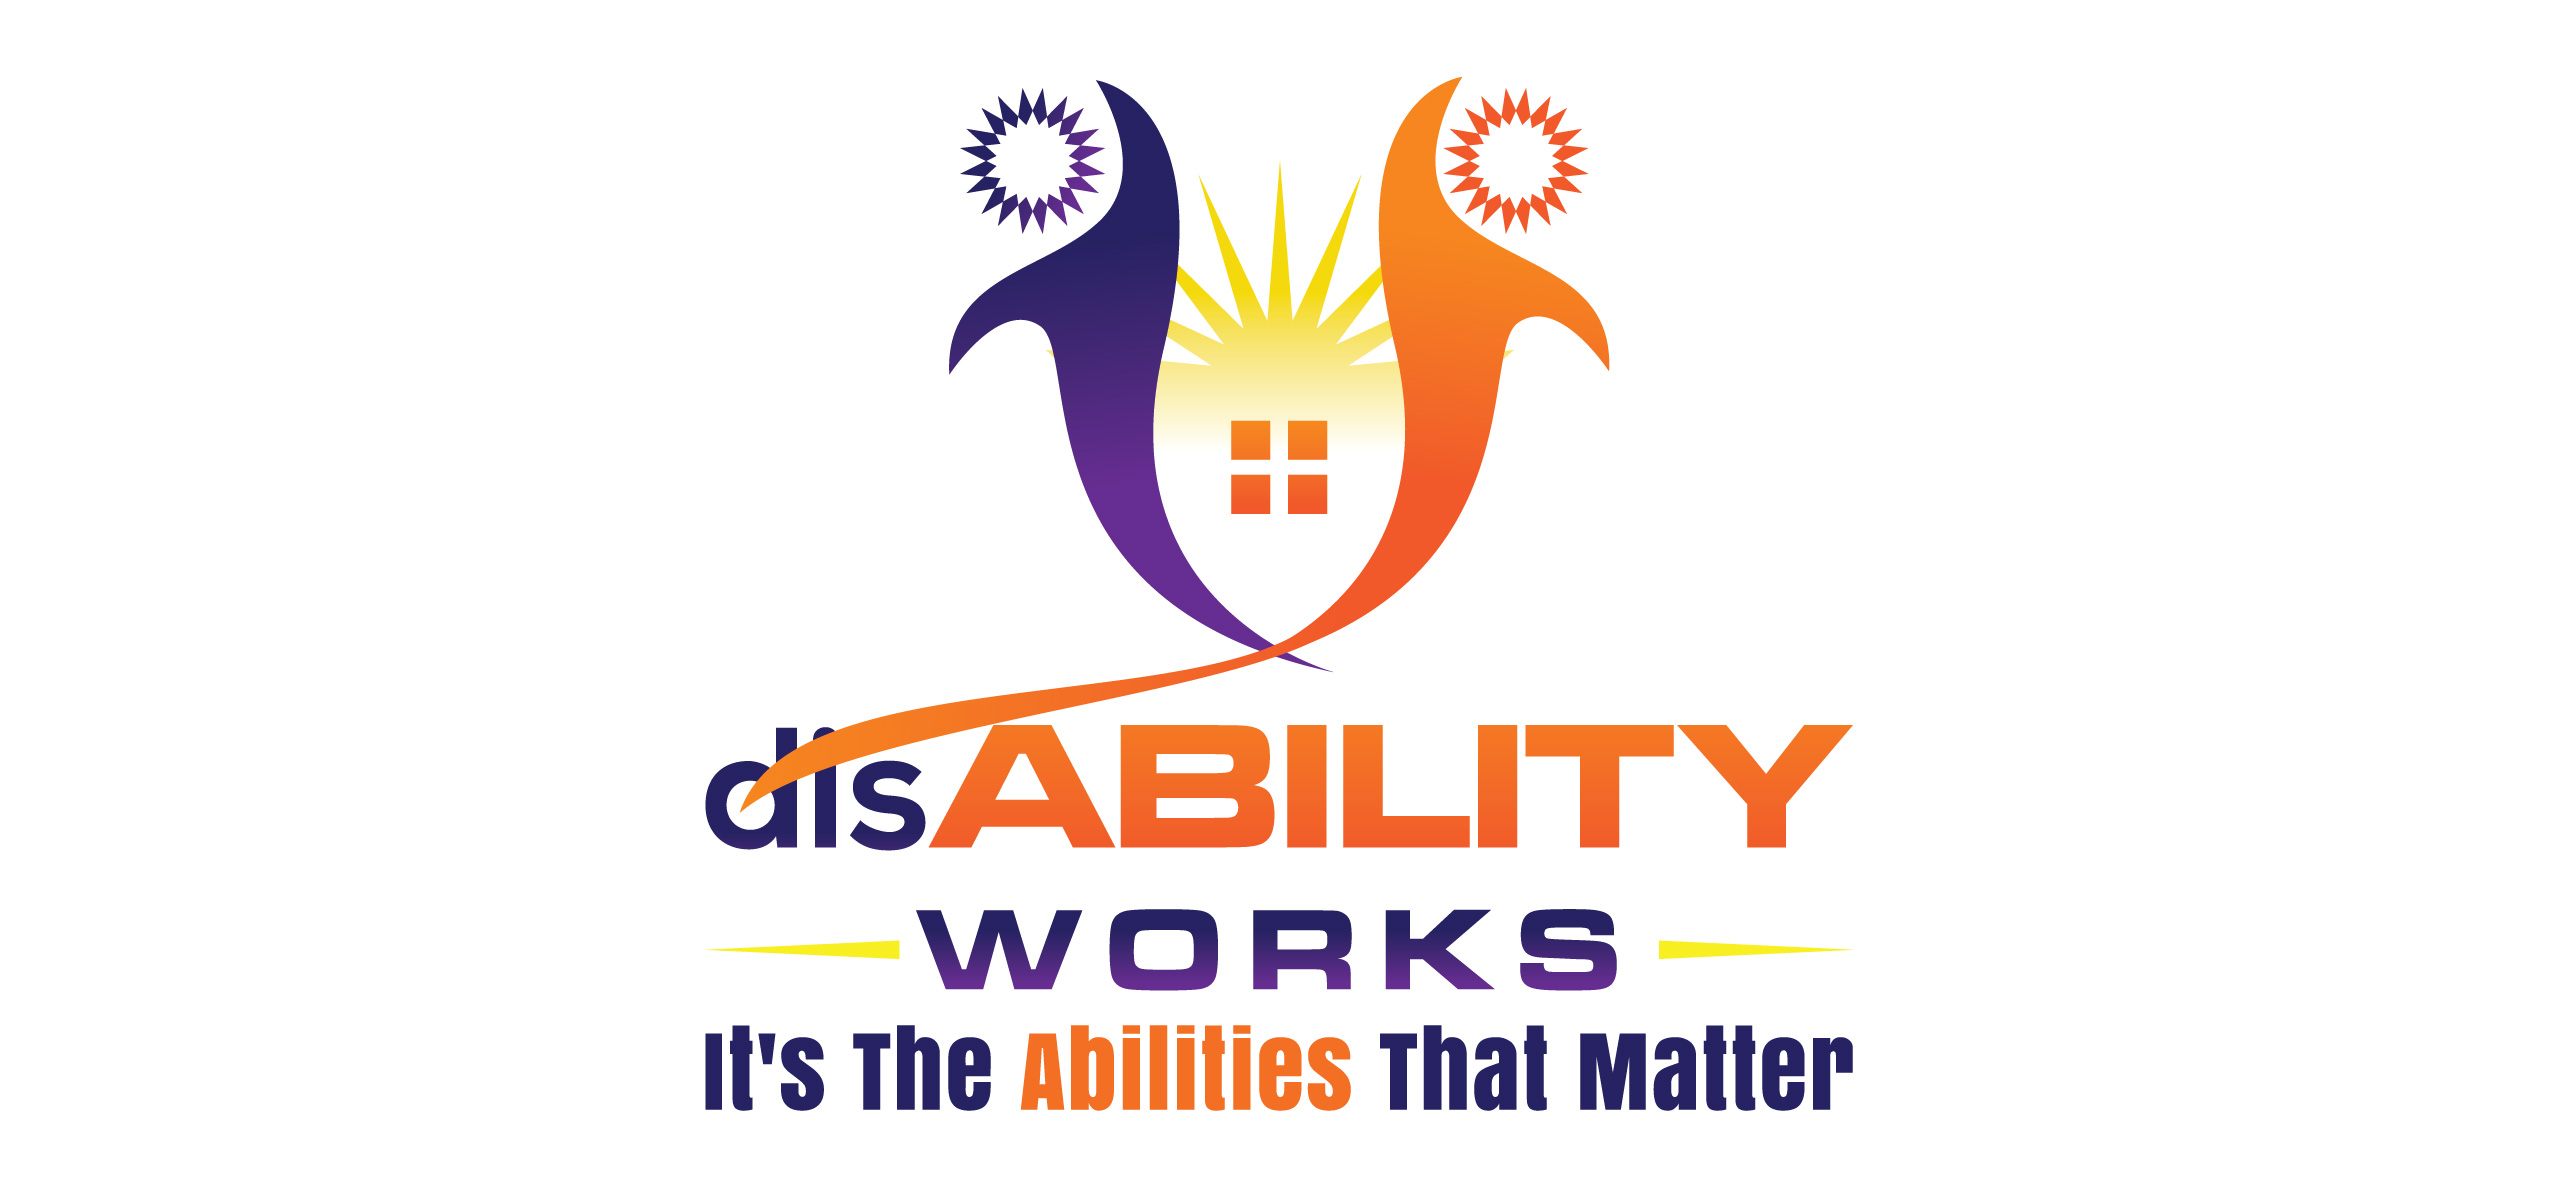 Disability Works